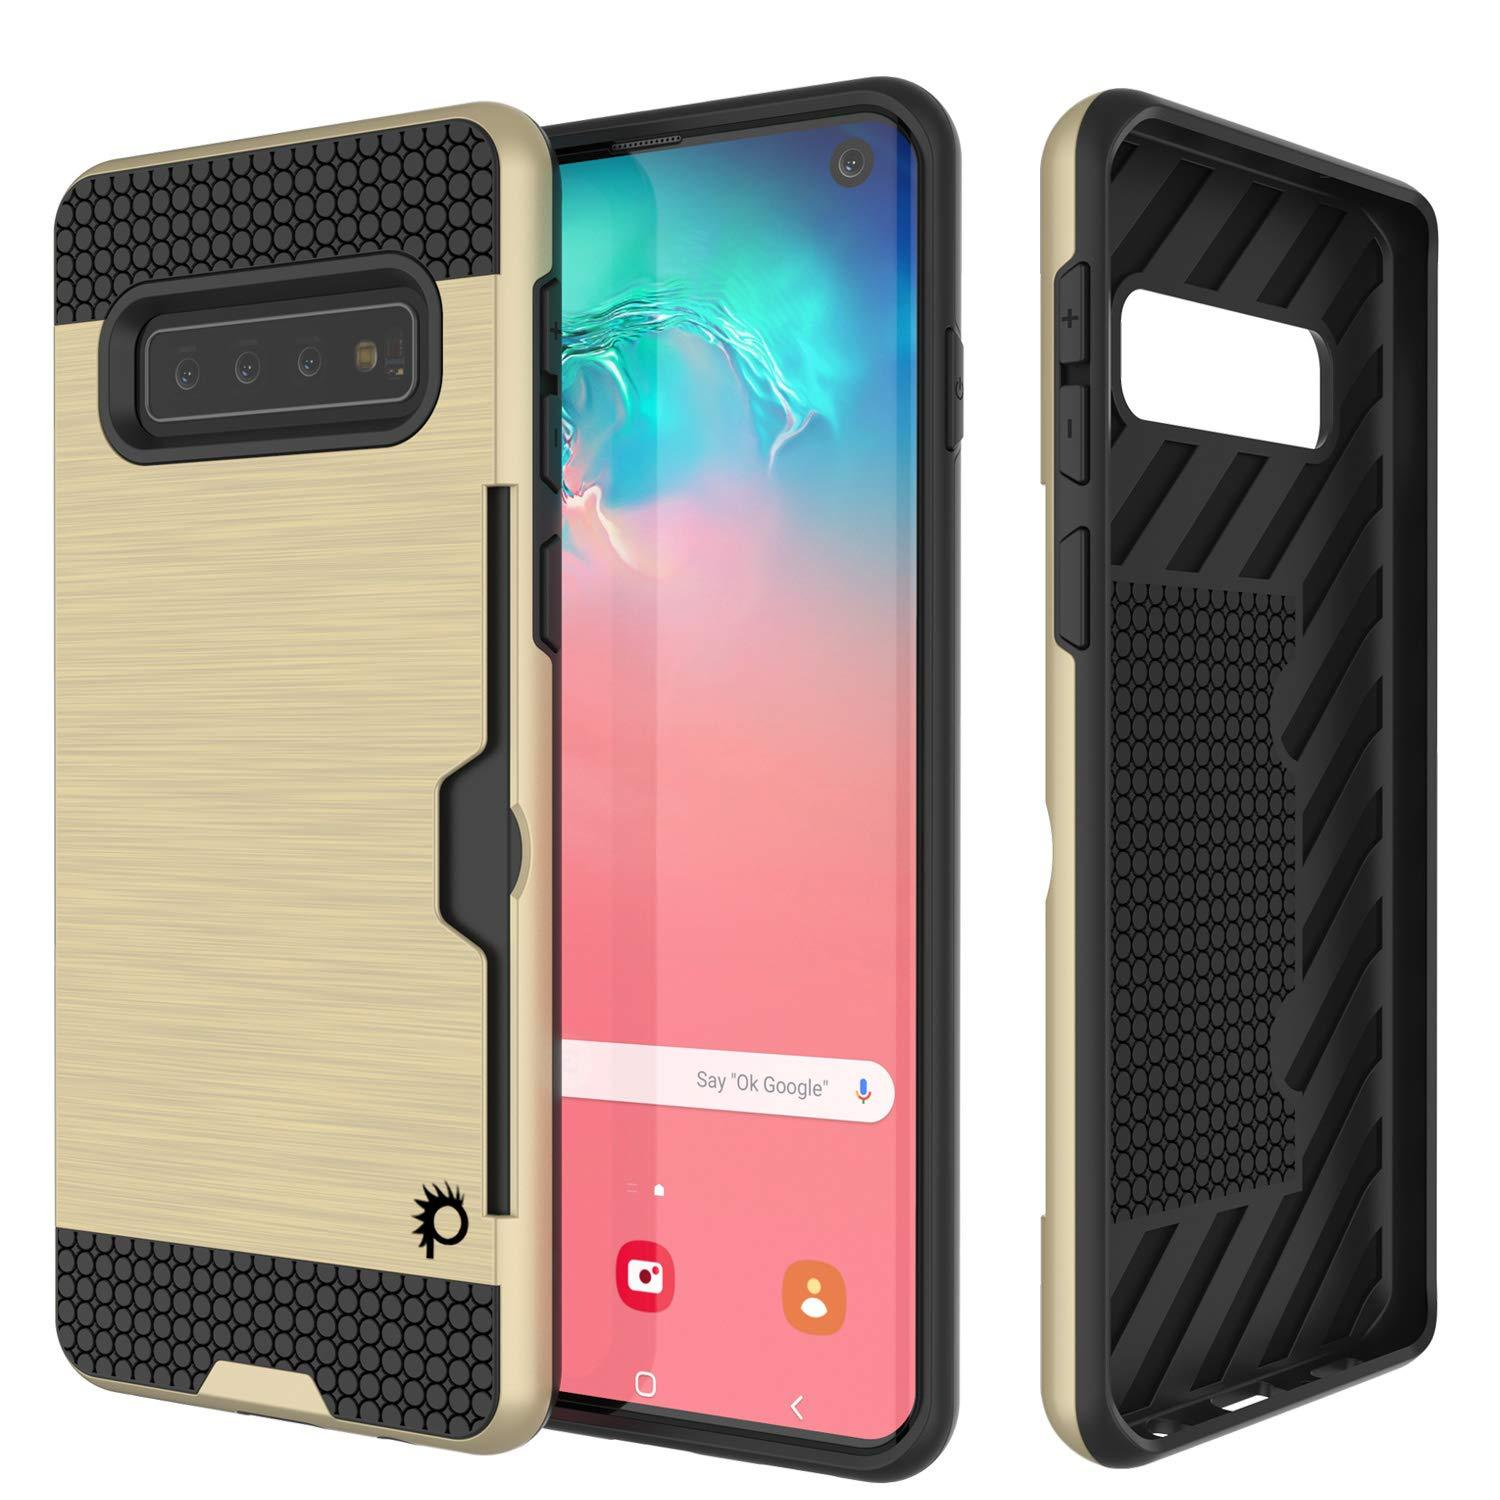 Galaxy S10e Case, PUNKcase [SLOT Series] [Slim Fit] Dual-Layer Armor Cover w/Integrated Anti-Shock System, Credit Card Slot [Gold]